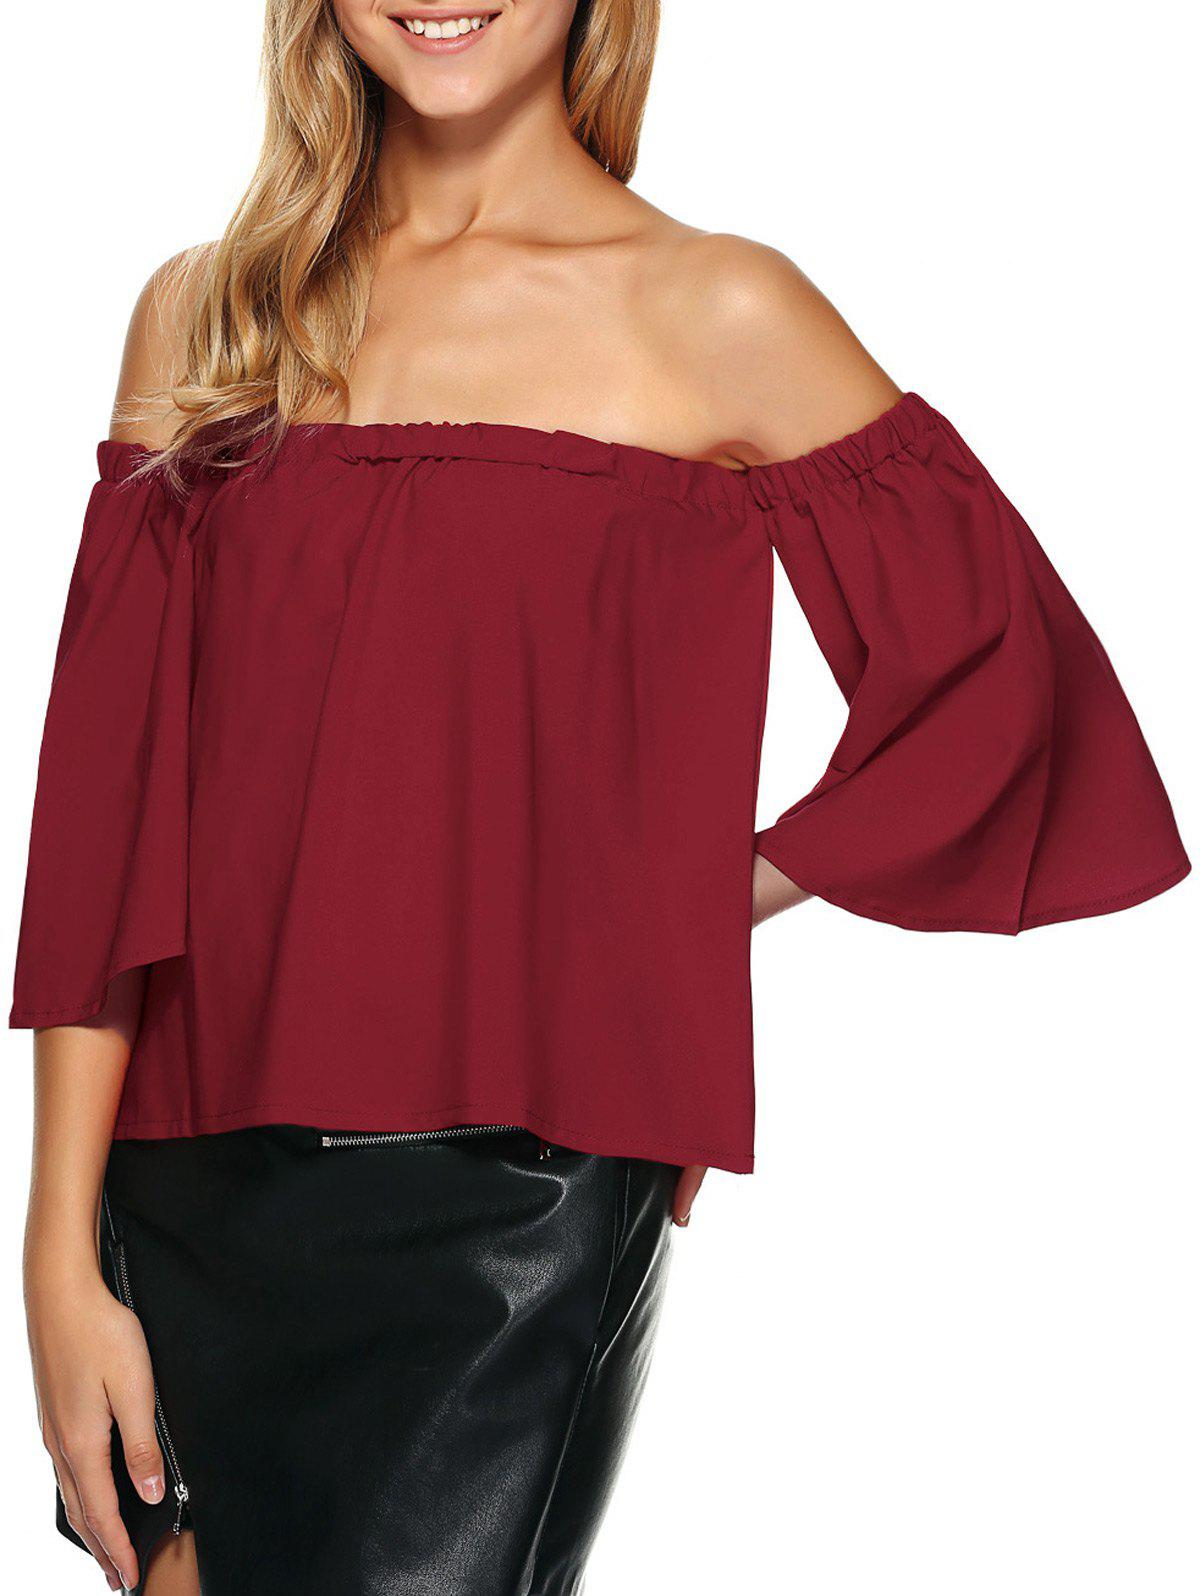 Off The Shoulder Ruffle Top - Rouge vineux S